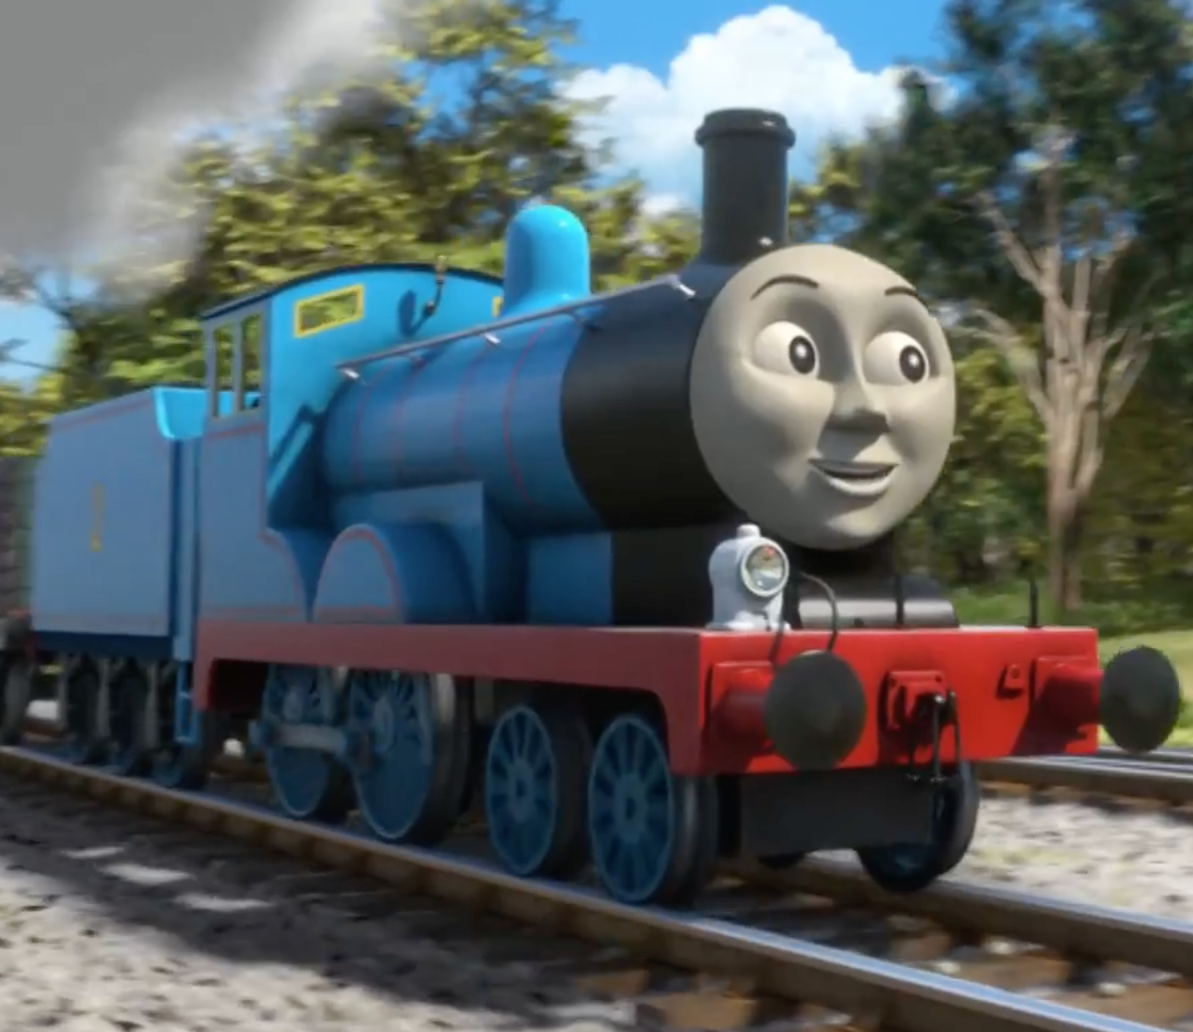 Image mainedwardcgig thomas and twilight sparkles adventures thumbnail for version as of 2013 march 3 2018 altavistaventures Image collections